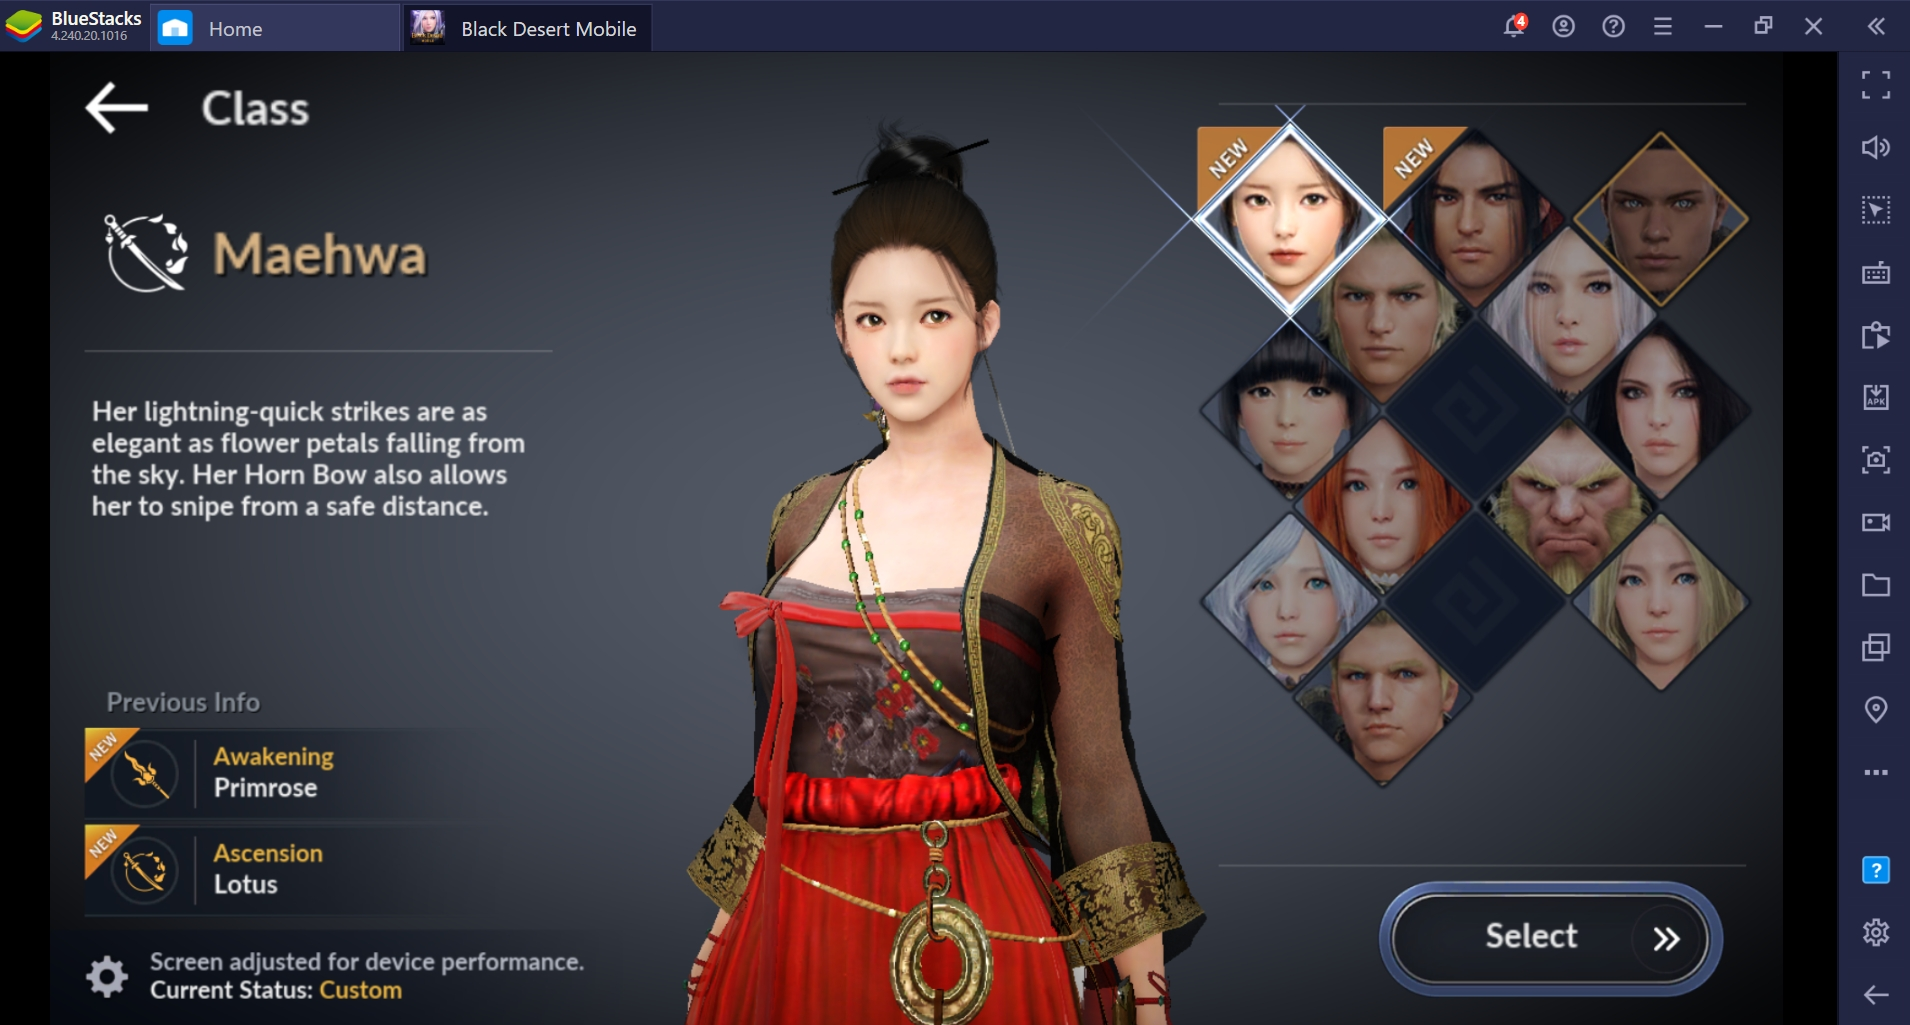 Black Desert Mobile Introduces 2 New Classes 'Musa' and 'Maewha'